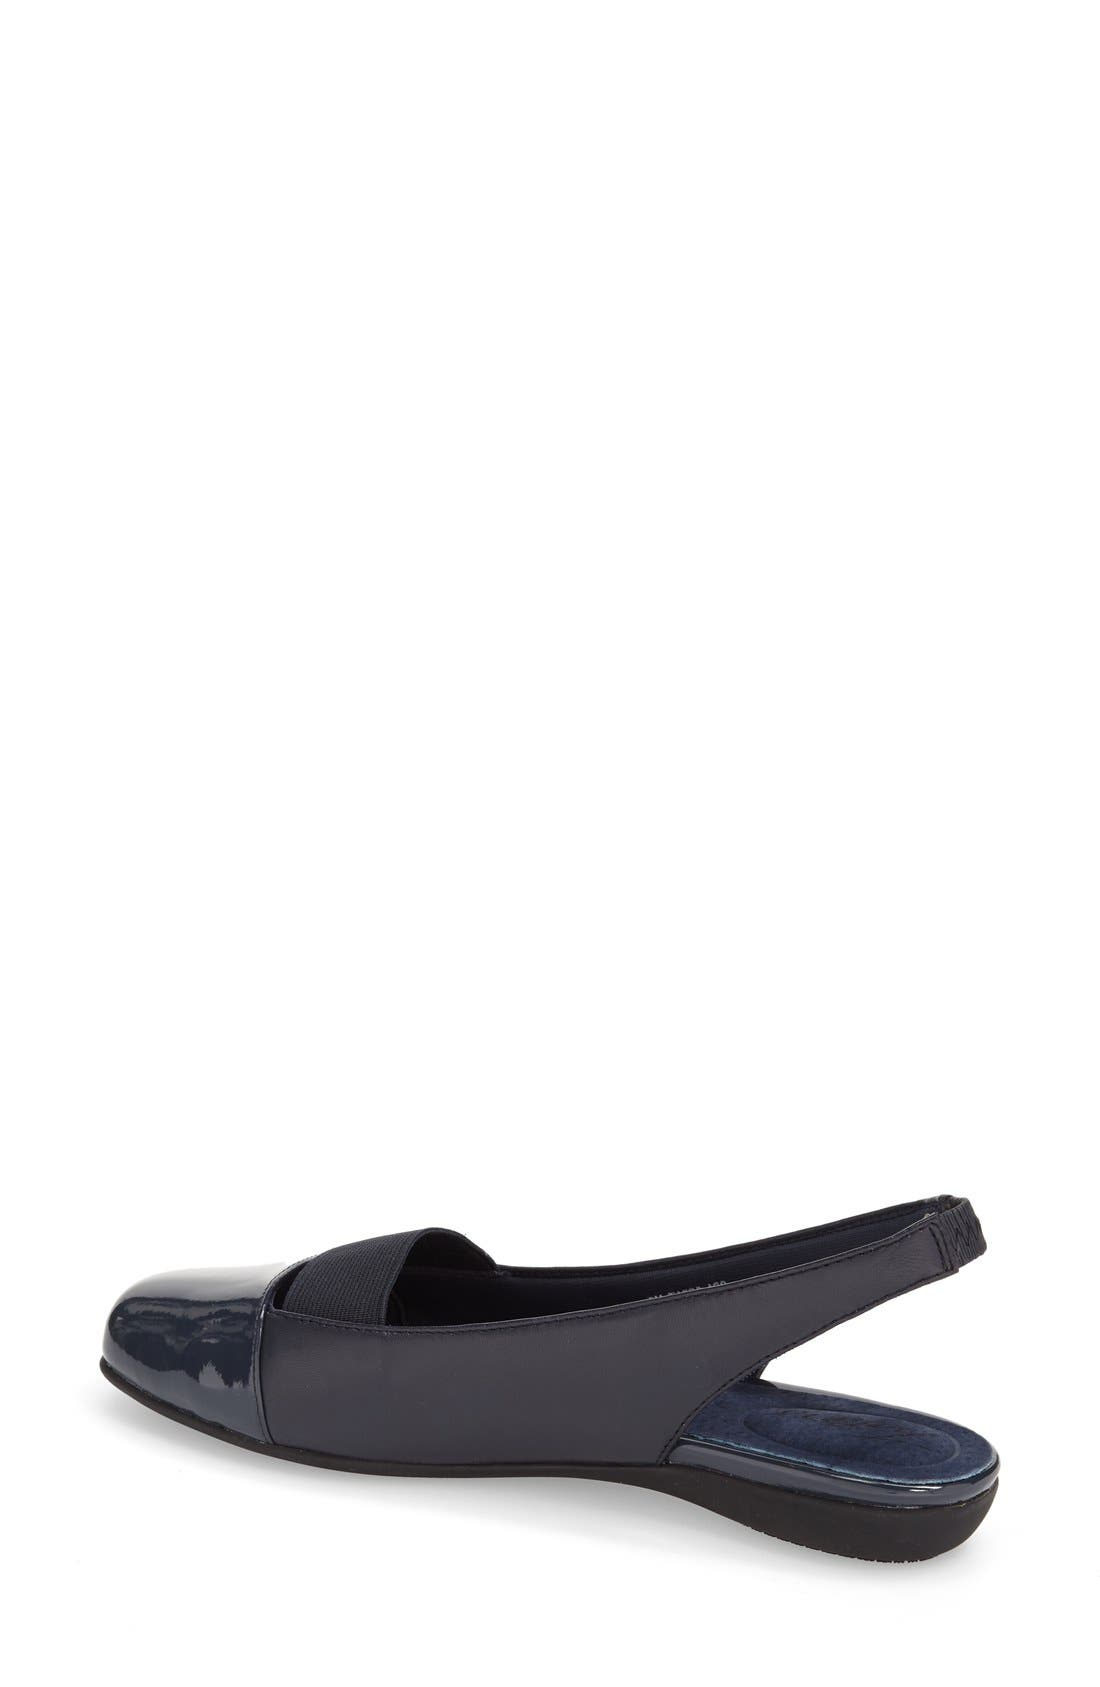 'Sarina' Slingback Flat,                             Alternate thumbnail 4, color,                             Navy Leather